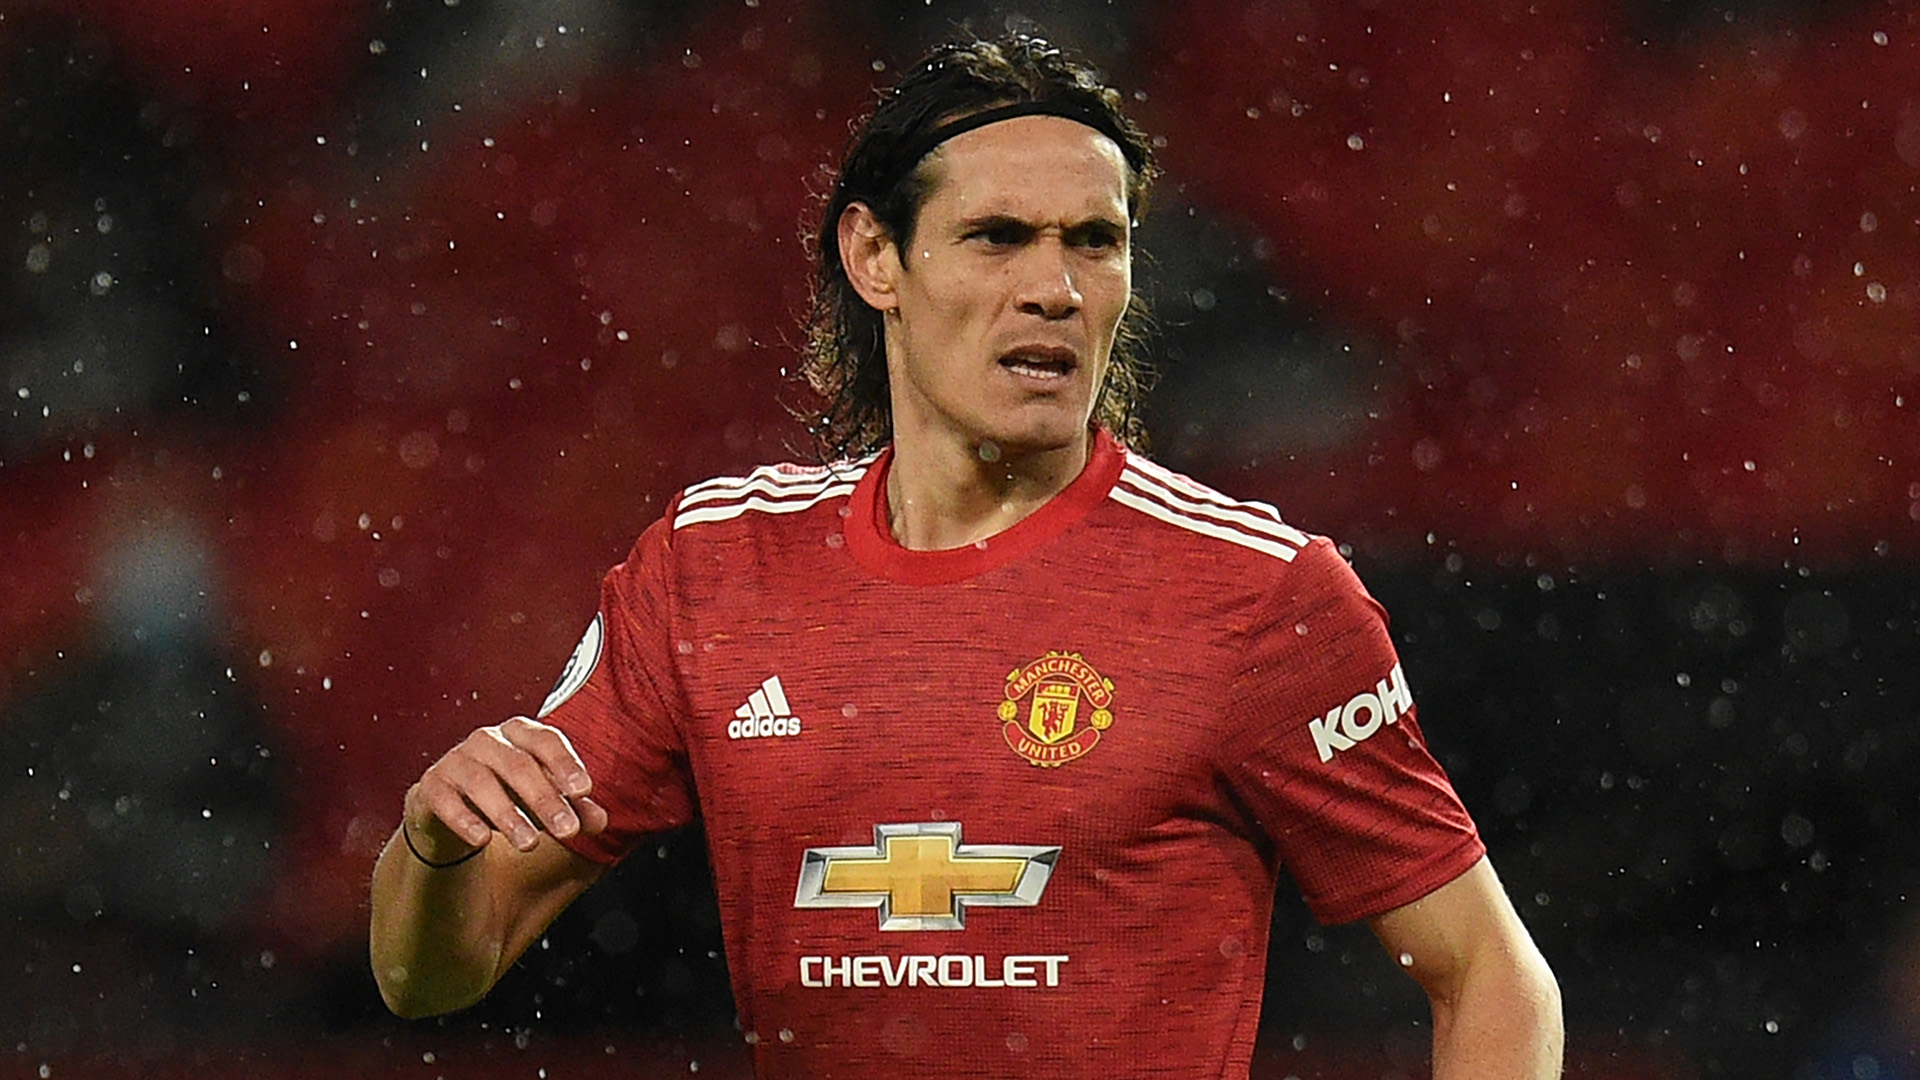 Cavani hit with FA misconduct charge over racially insensitive Instagram  post as Man Utd consider response | Goal.com